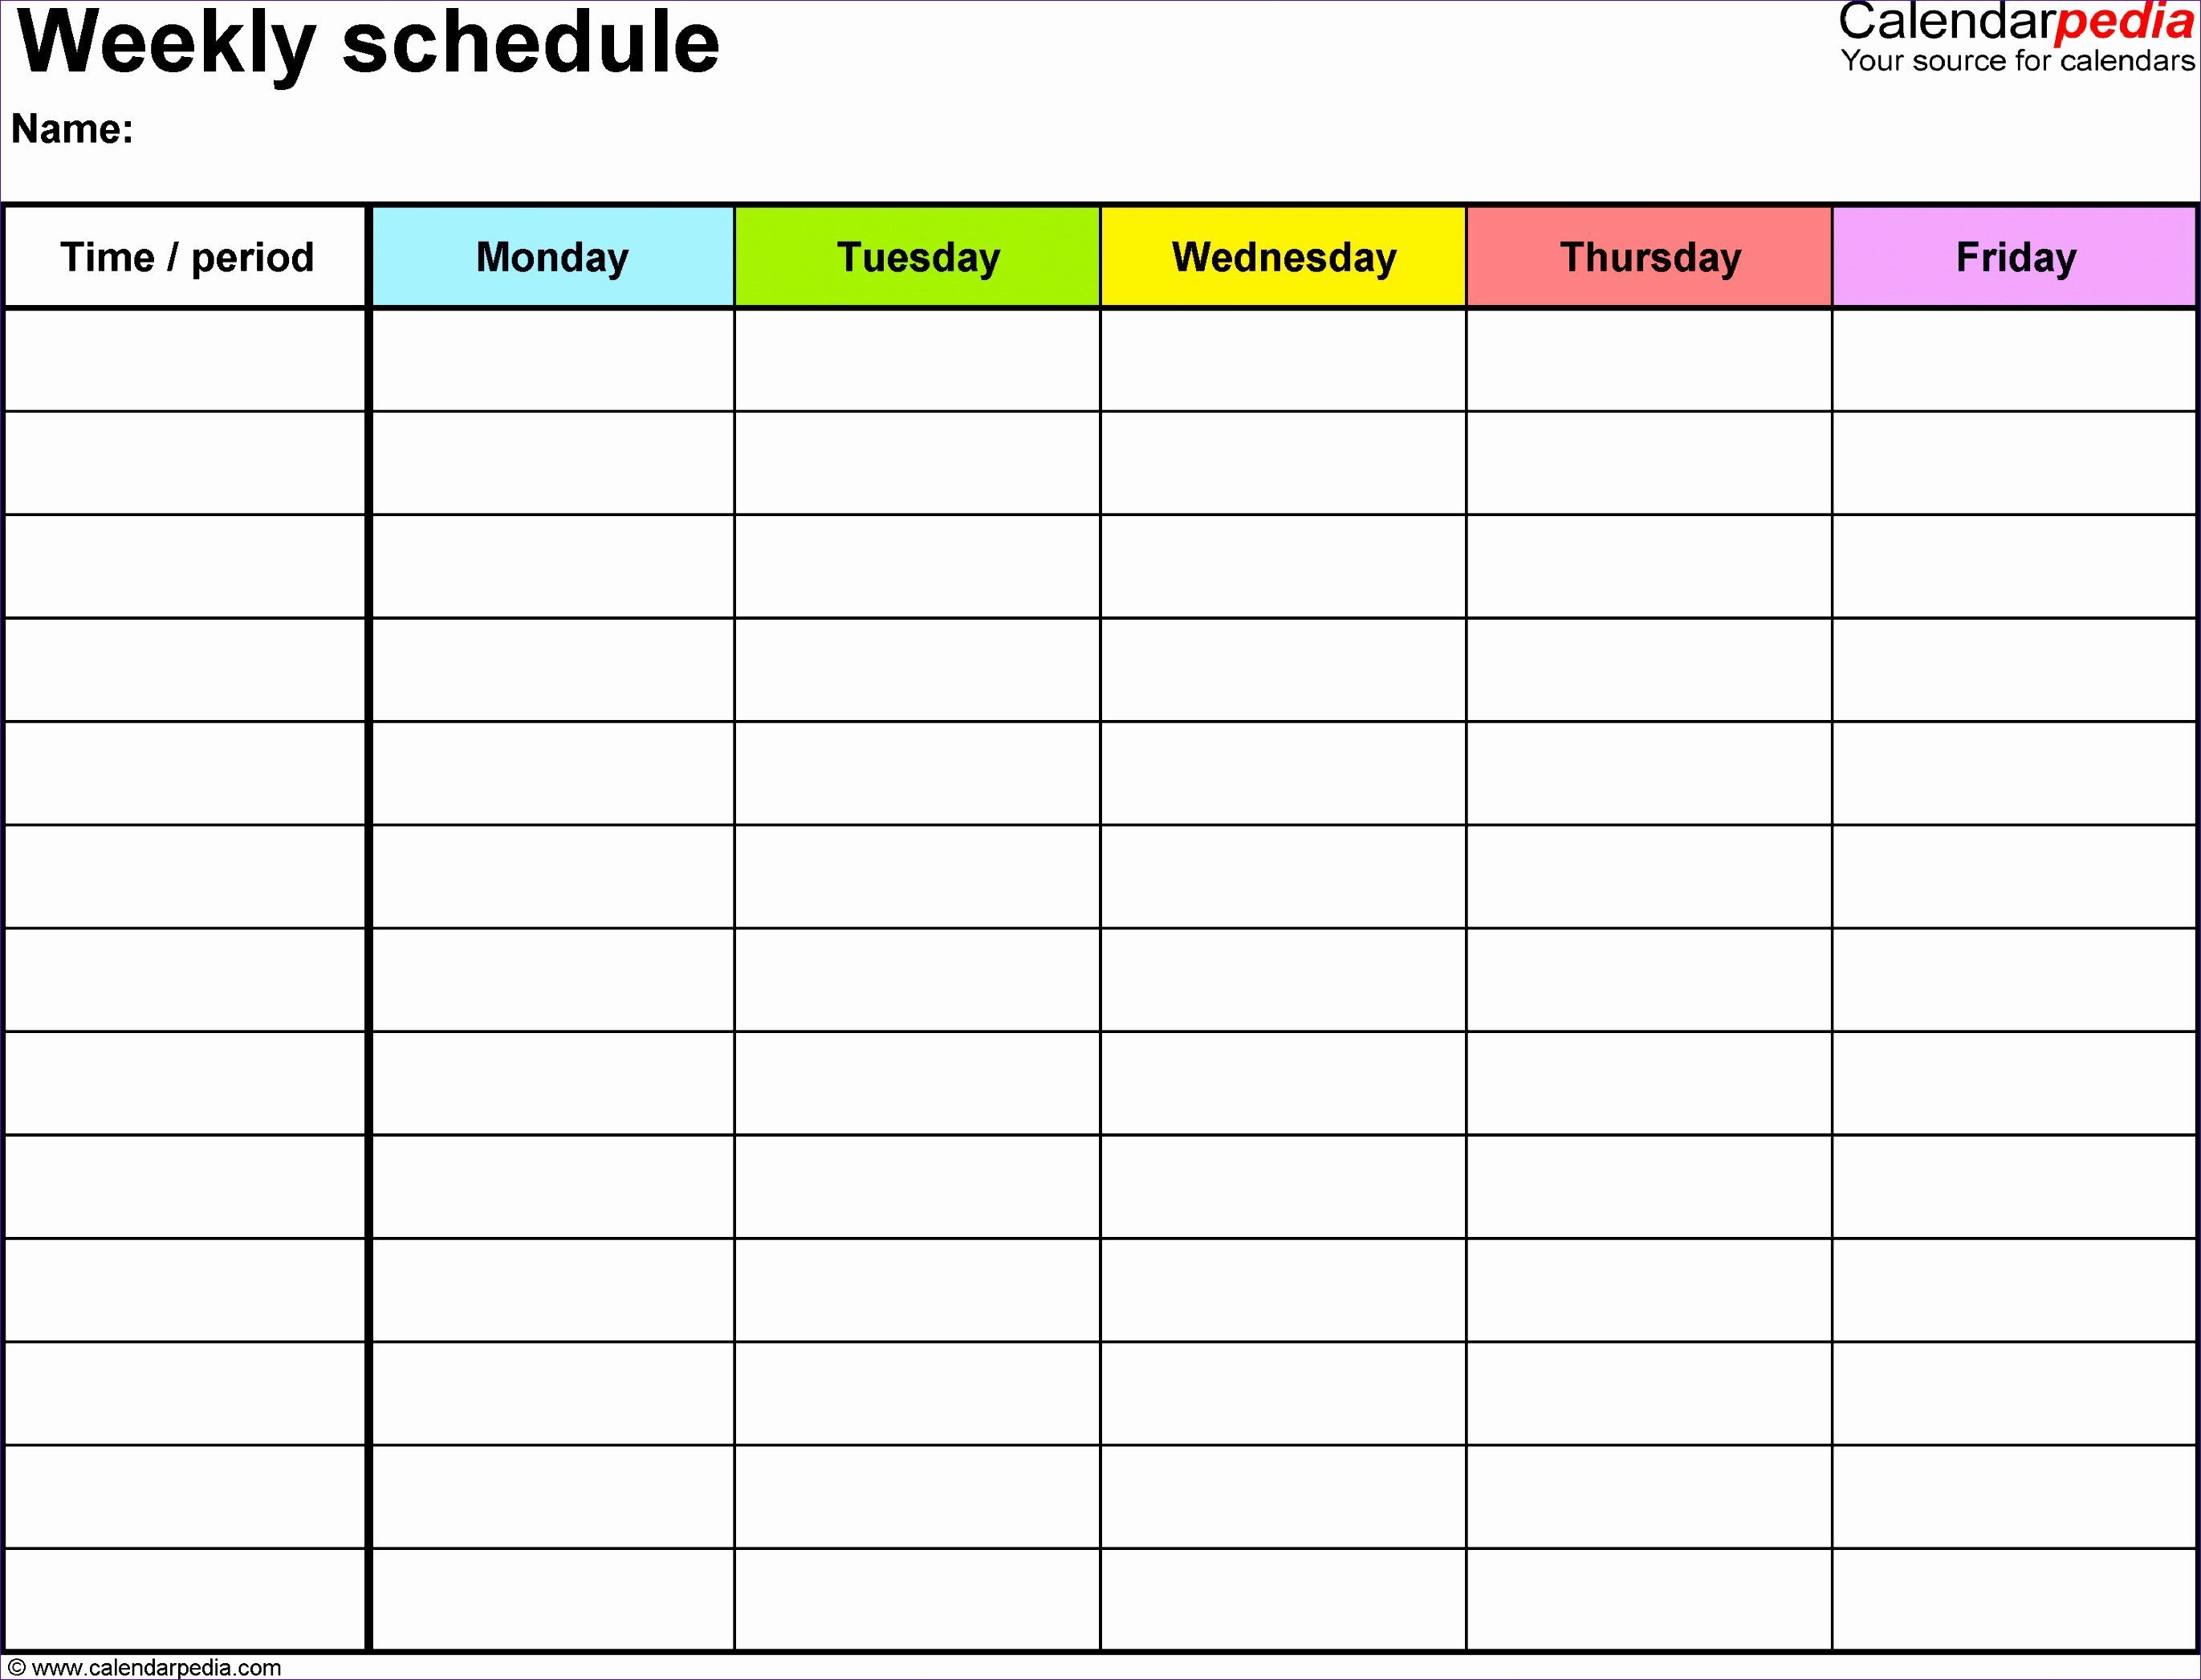 Pin By Olgica Stankovic On Olgica Planner Template Monthly Planner Template Monthly Planner